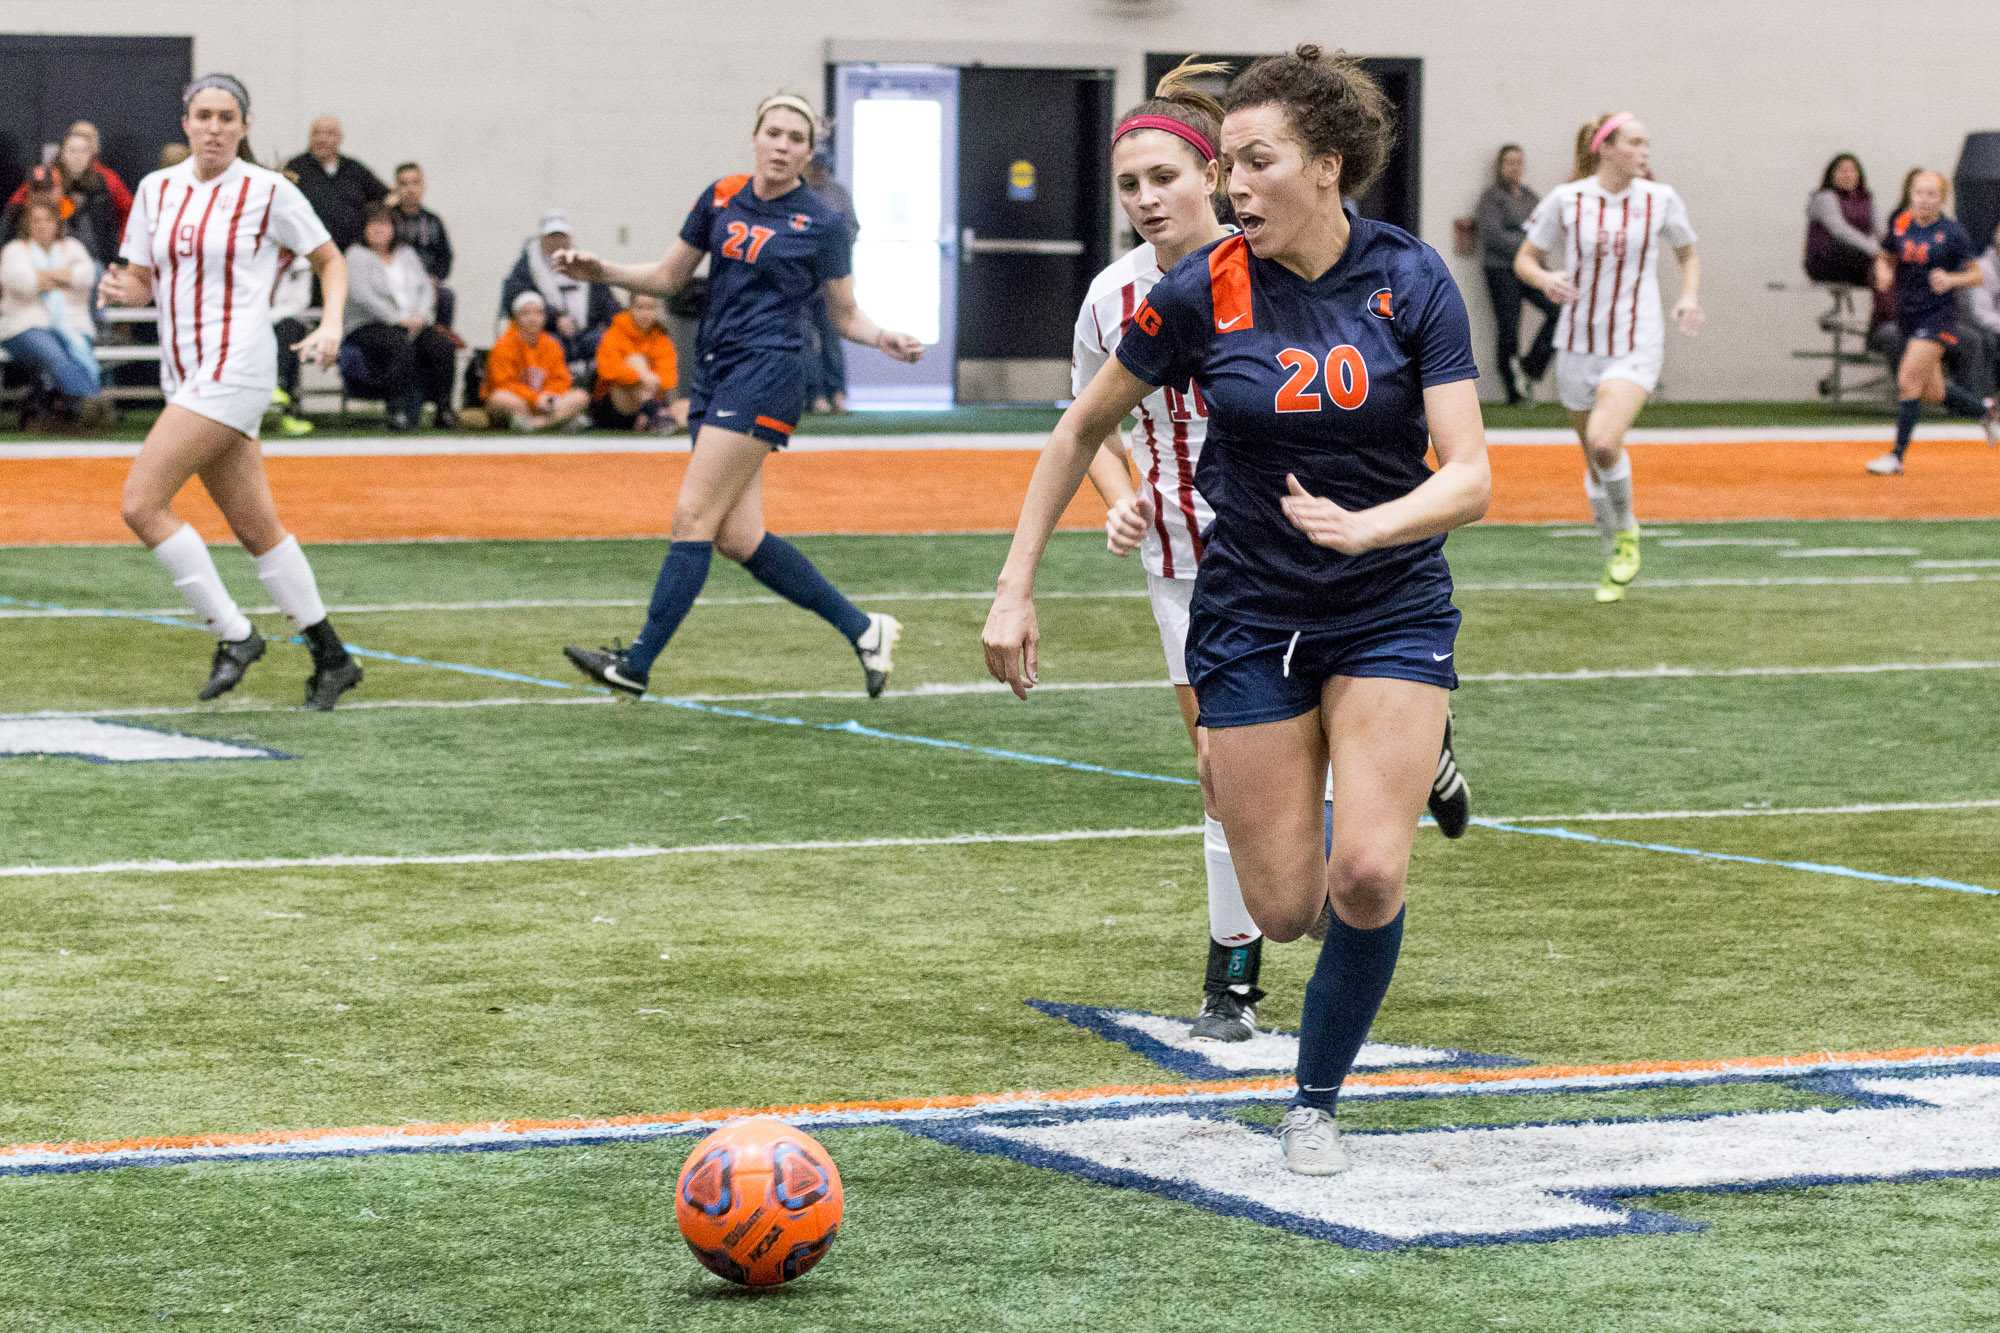 Illinois' Kara Marbury runs for the ball during the game against Indiana in the annual 7 vs. 7 tournament at the Irwin Indoor Facility on February 27, 2016. The Illini won this game 4-0.